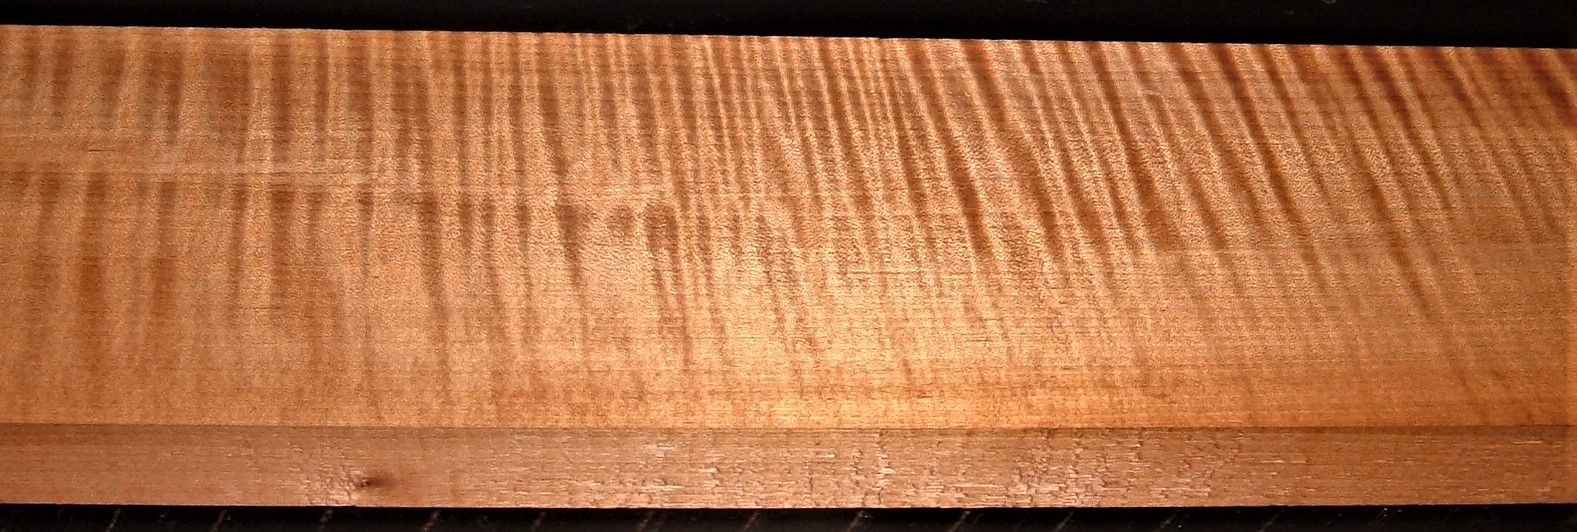 QRM2009-234JK, 1-3/16x5x48, Roasted Torrefied, Curly Tiger Quartersawn Maple